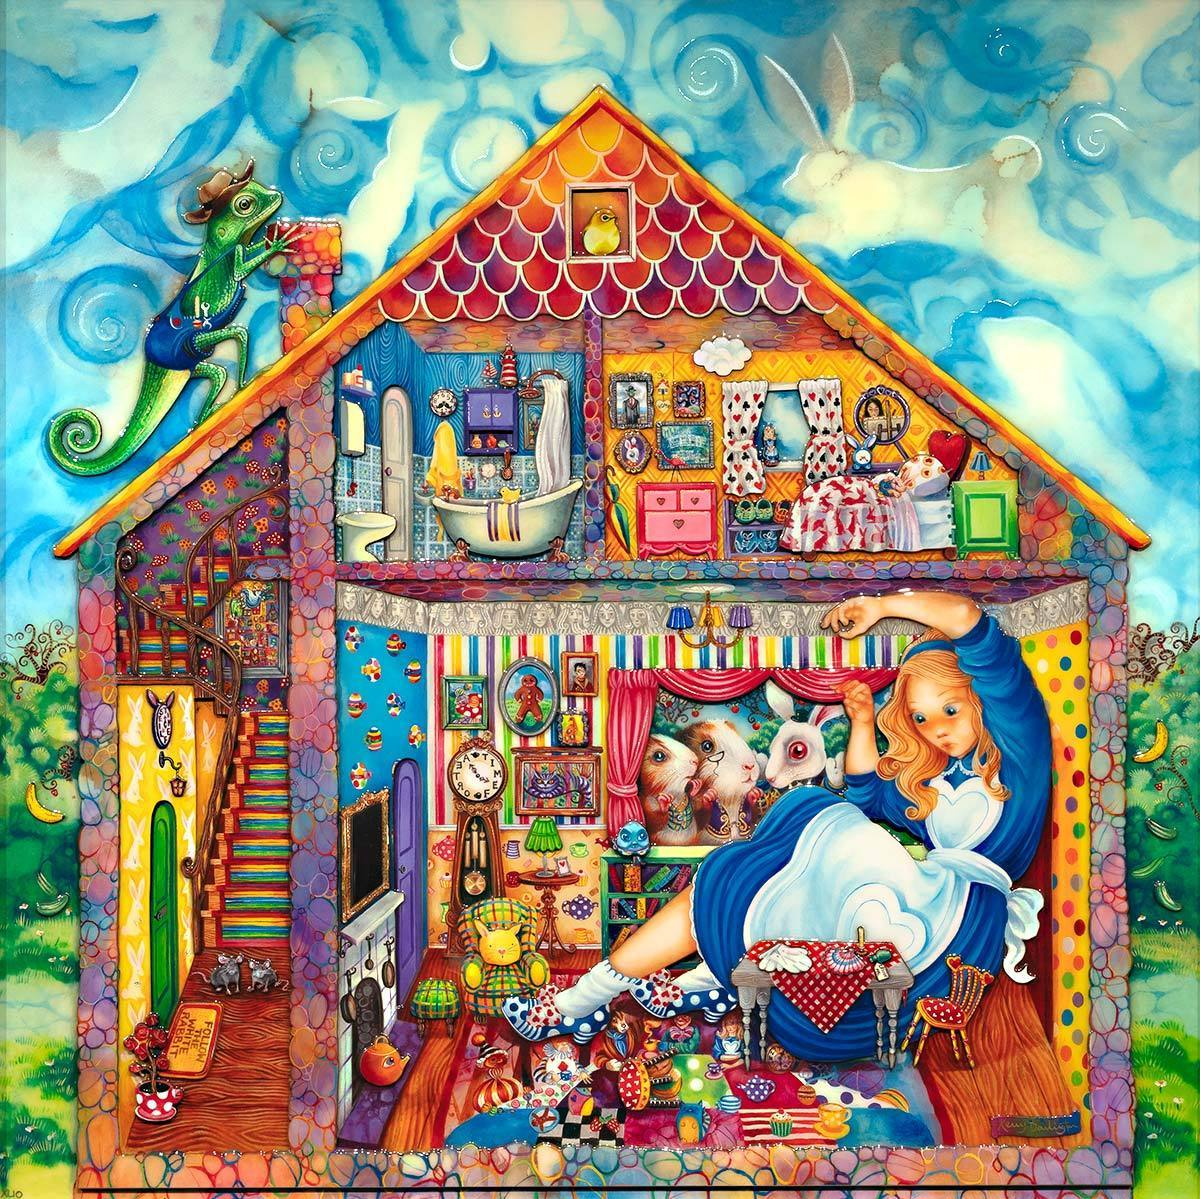 Alice in William Rabbits House - Deluxe Edition Kerry Darlington